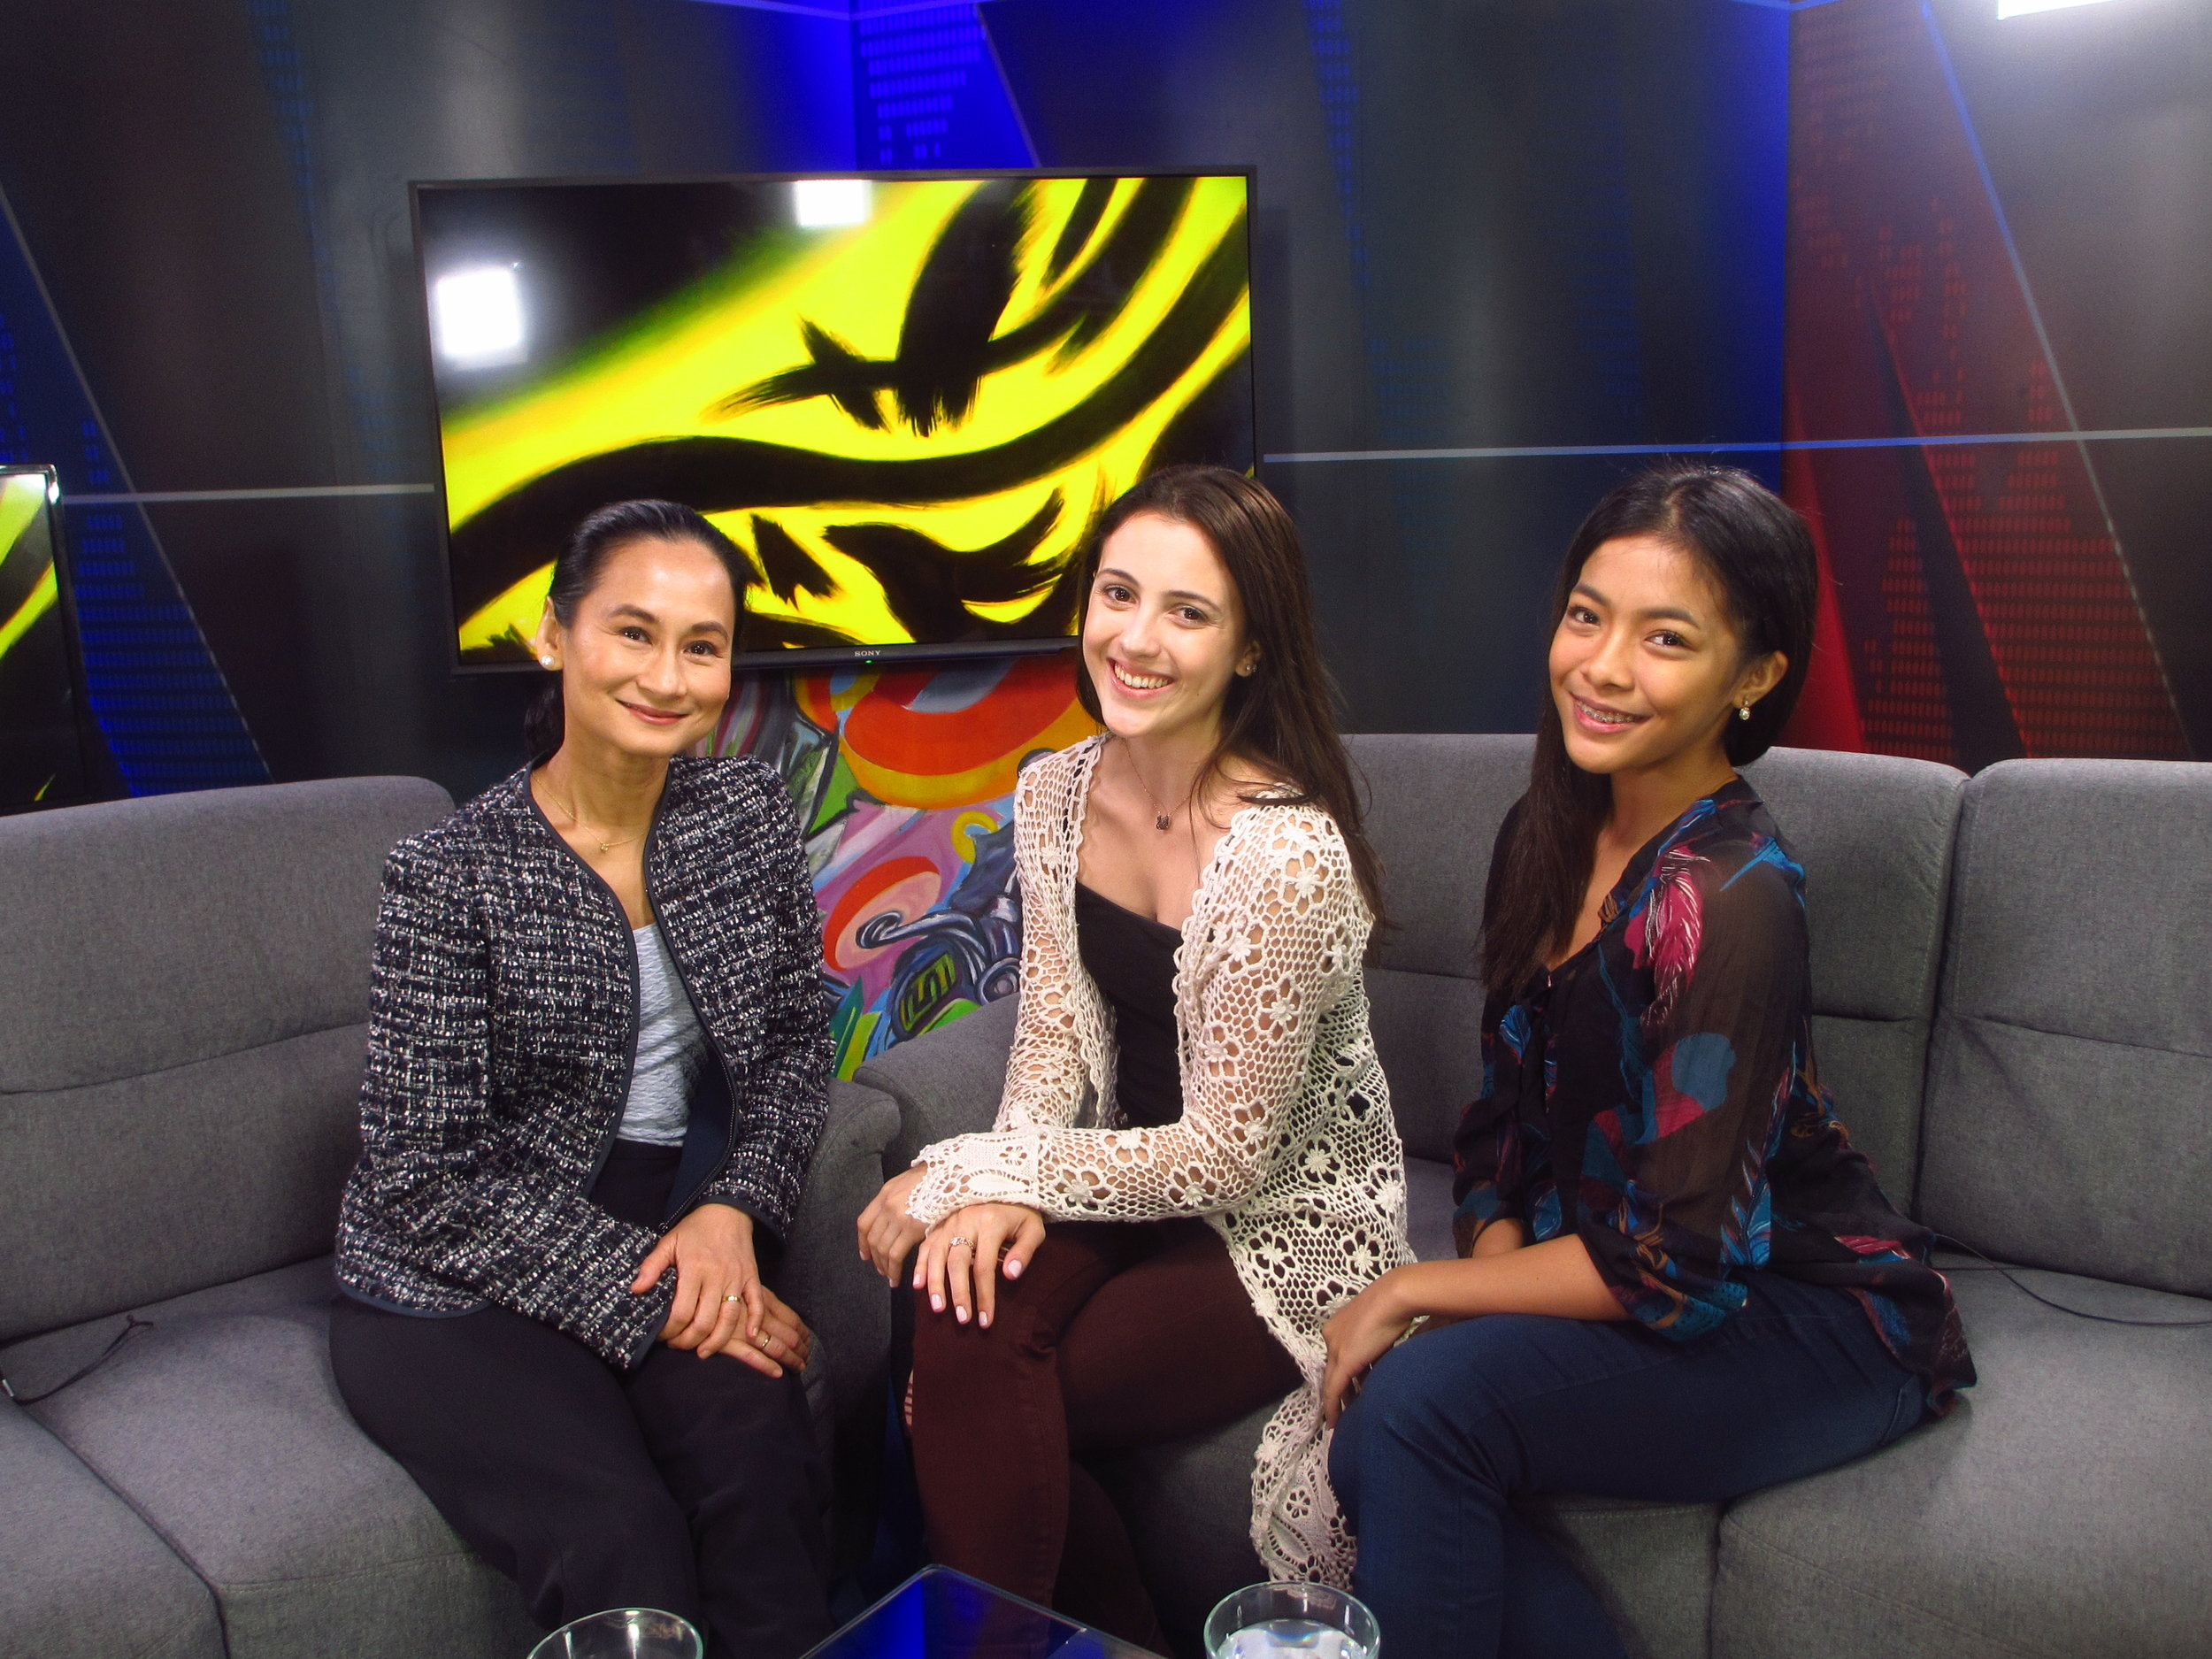 Art 2 Art host Lisa Macuja welcomes Ballet Manila guest principal artist Katherine Barkman (middle) and soloist Nicole Barroso for a conversation on their shared passion for dance.